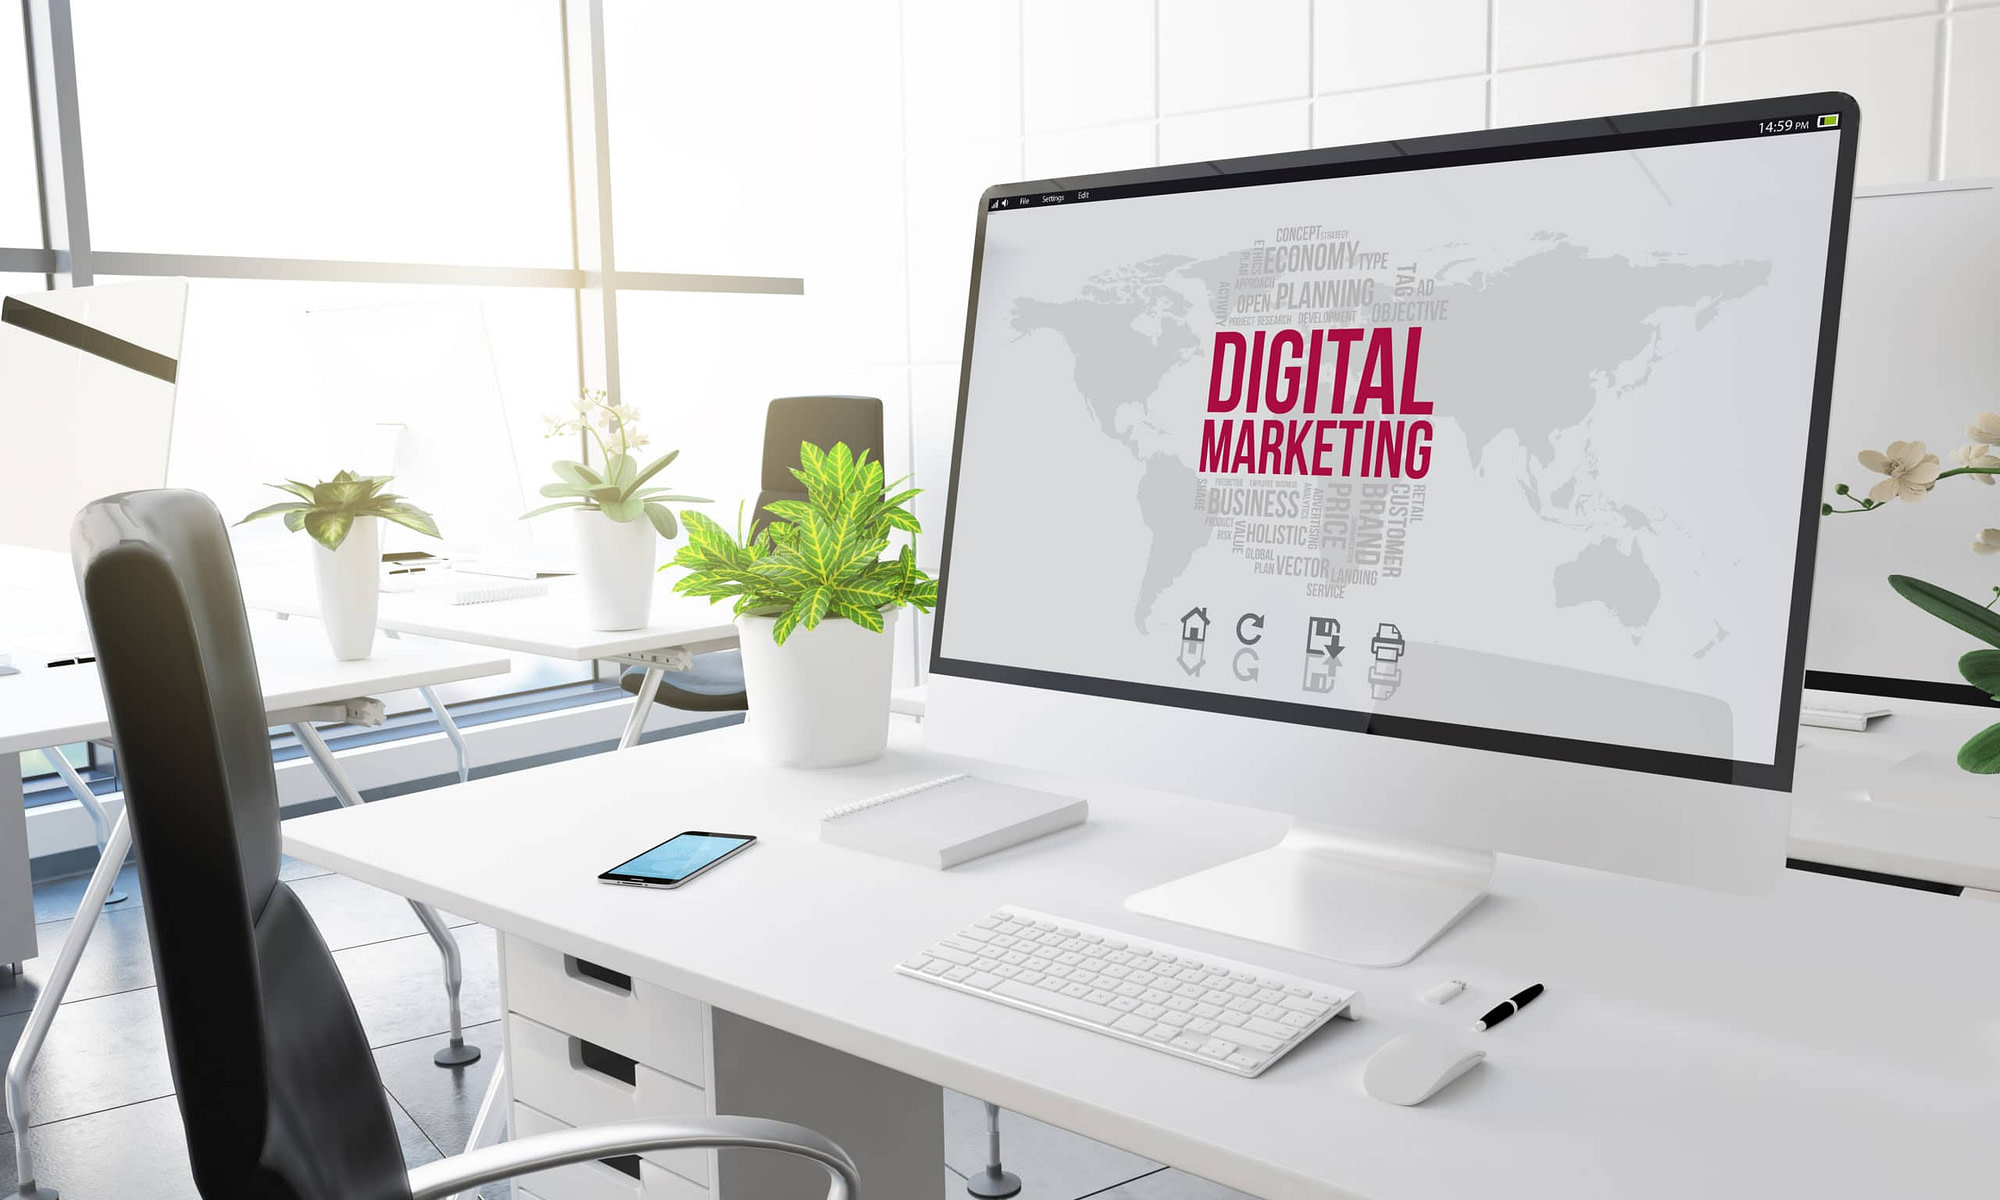 Digital Marketing Trends To Watch Out For in 2021